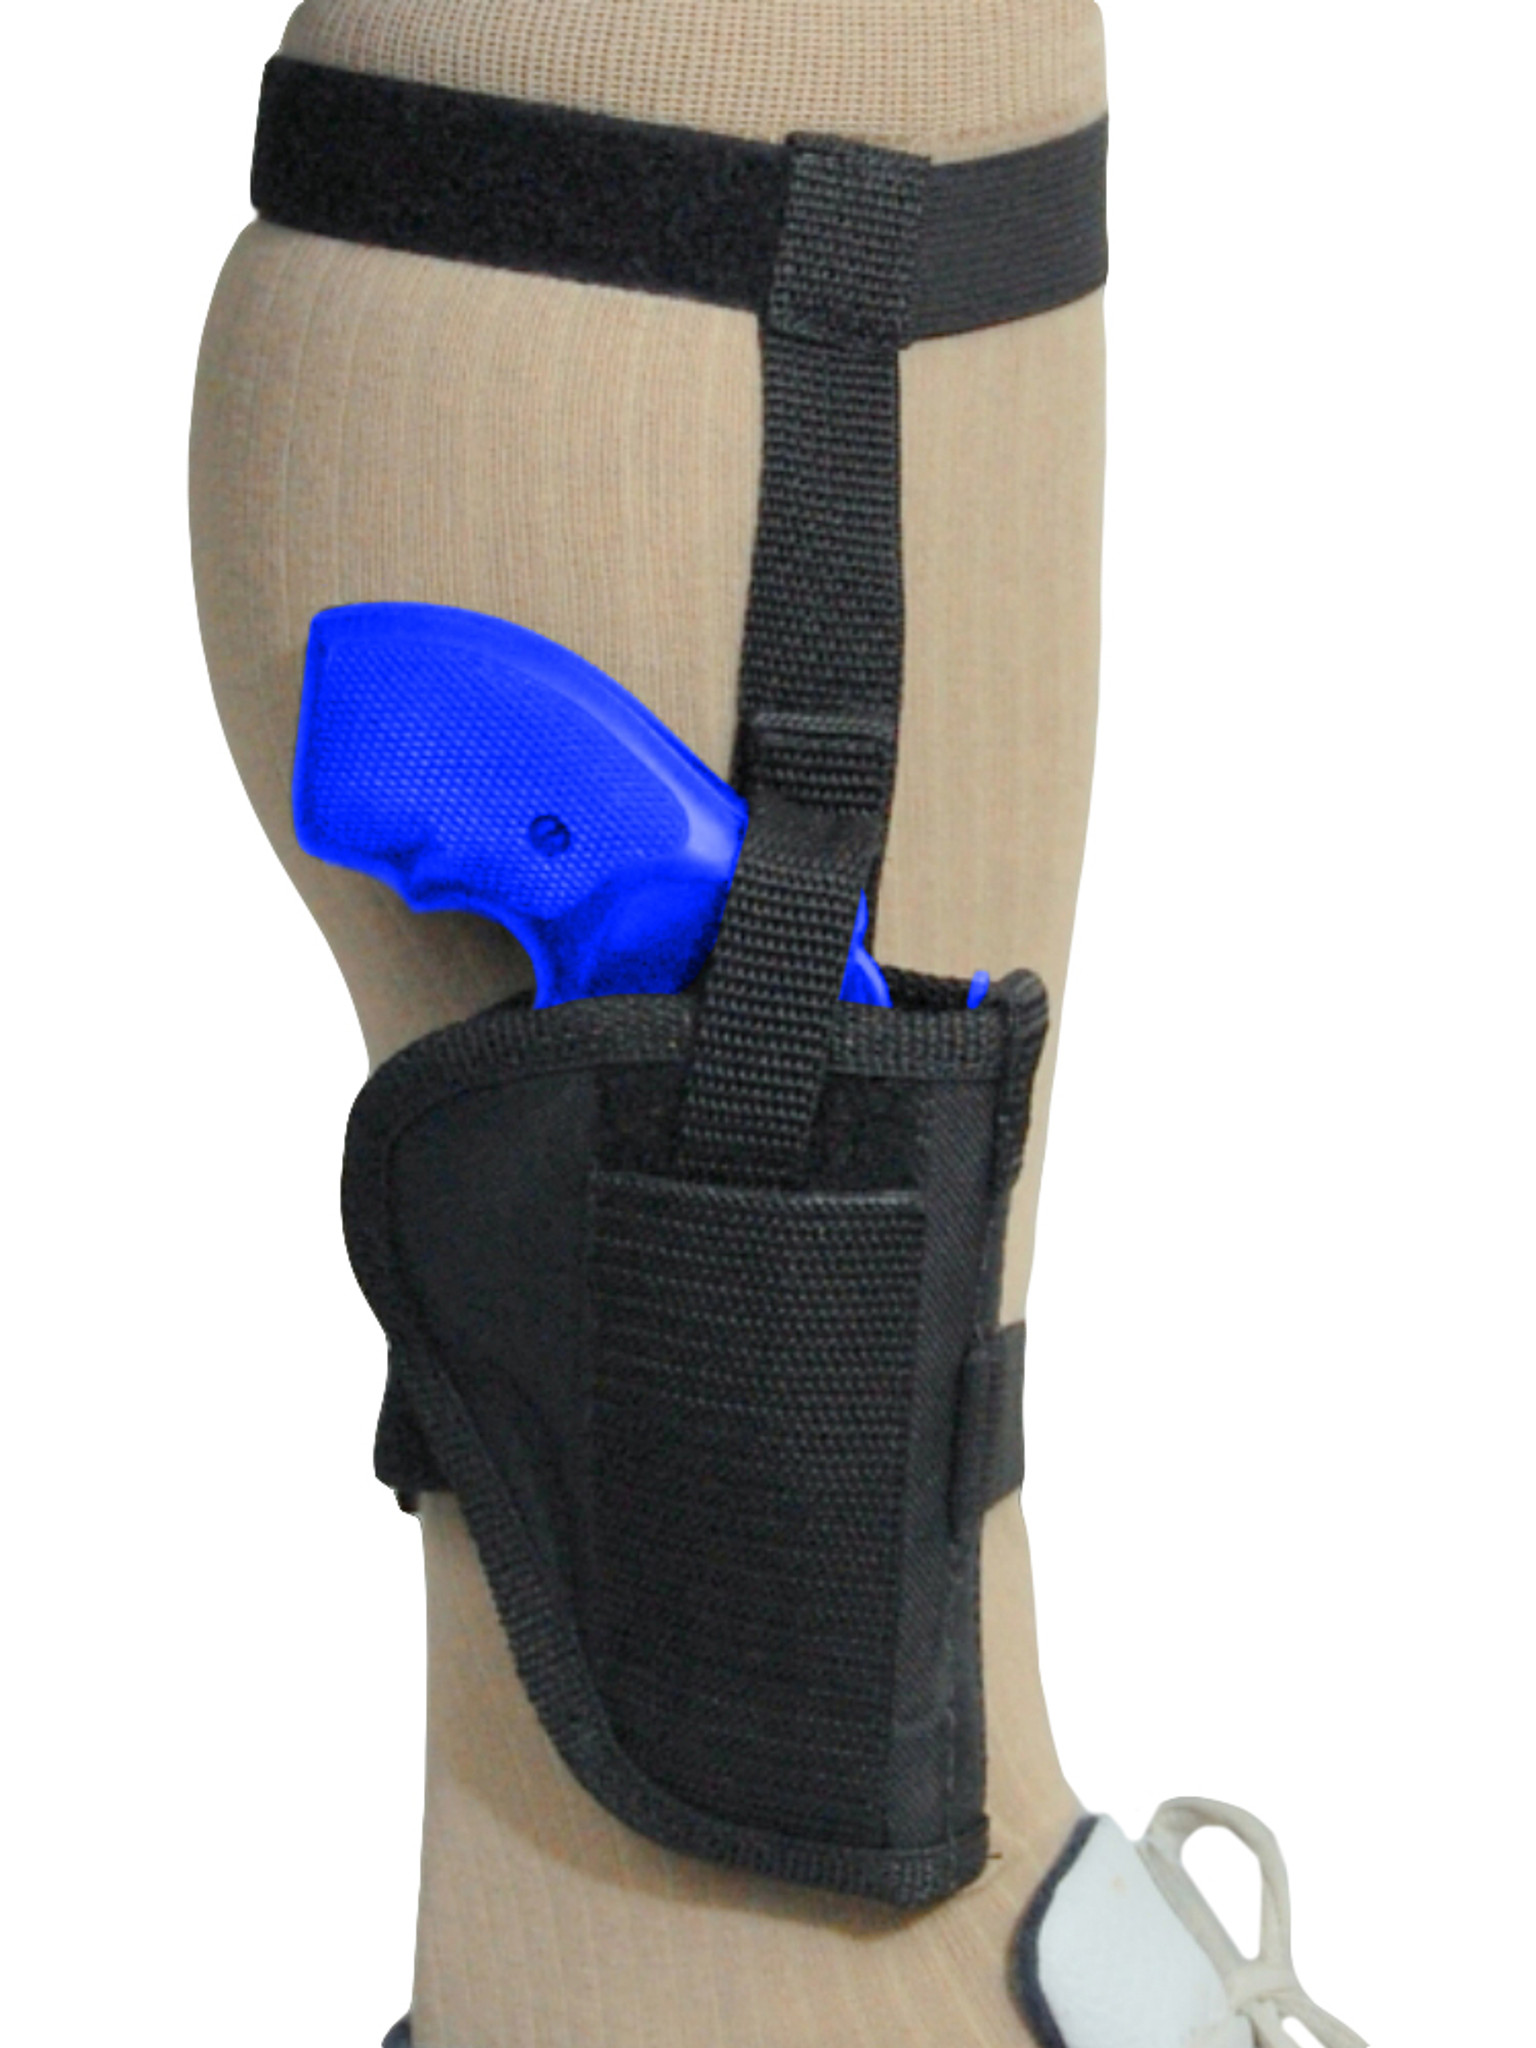 New Ankle Holster for 2